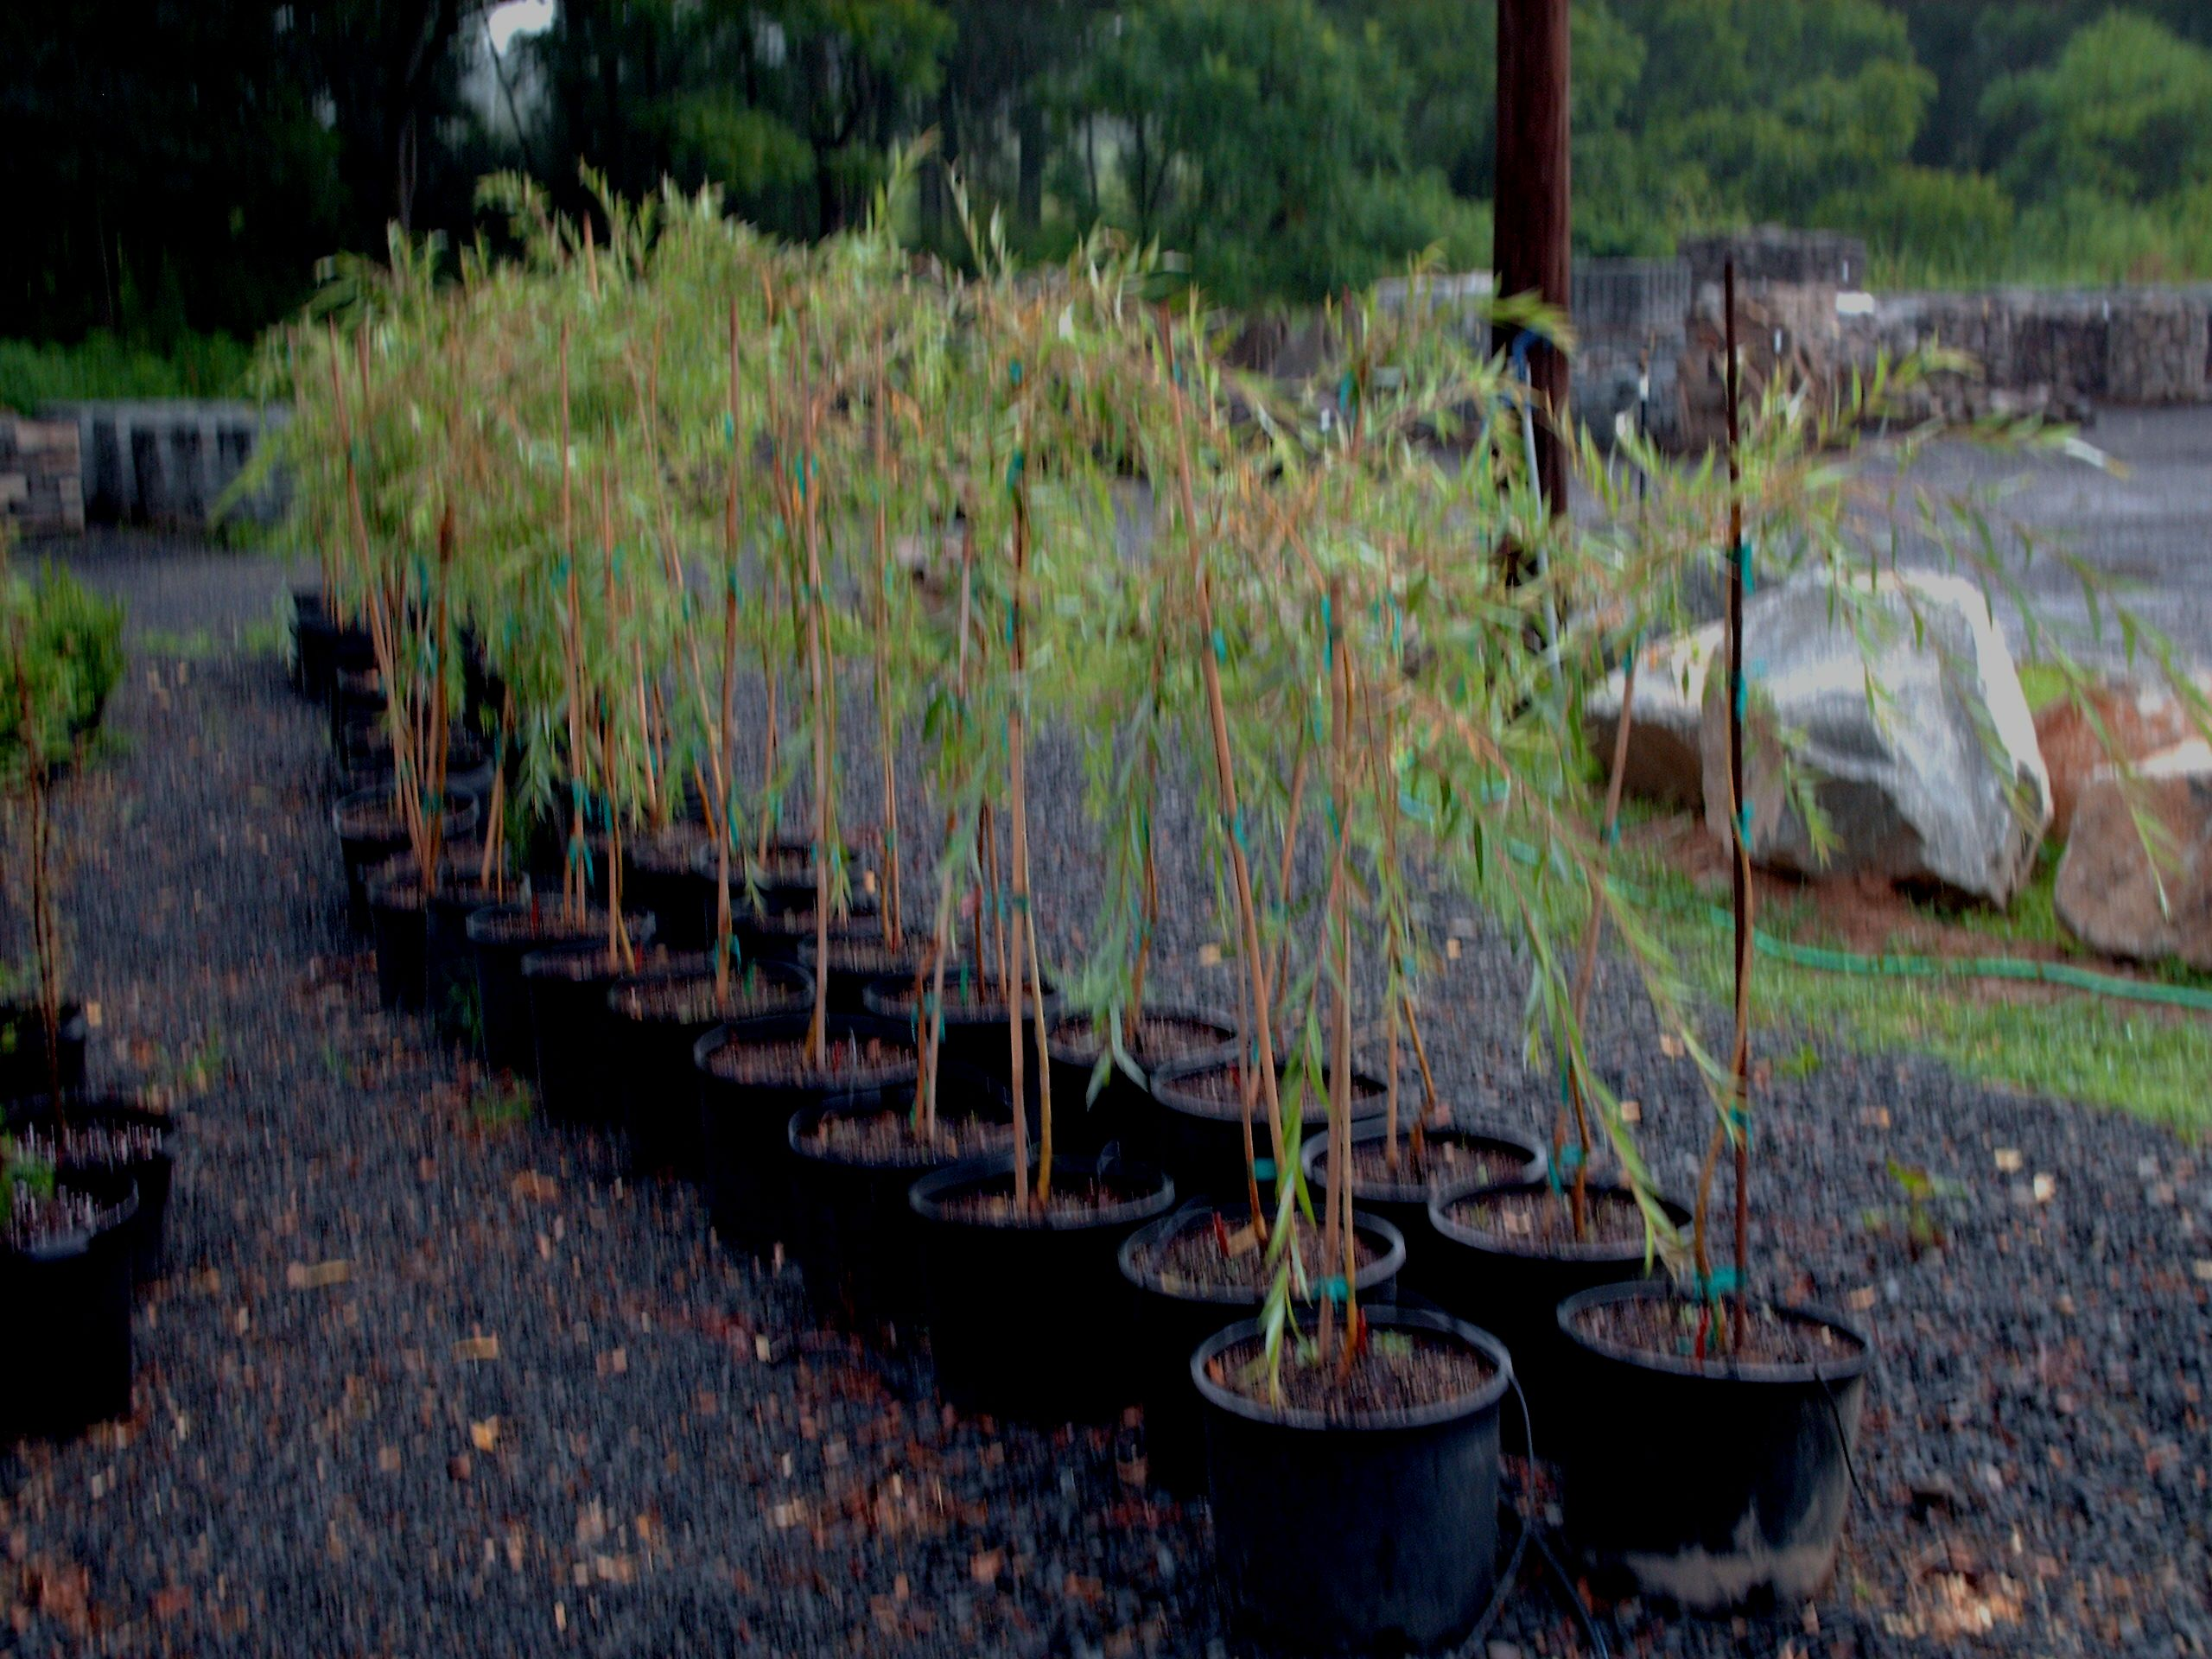 weeping willow sapling